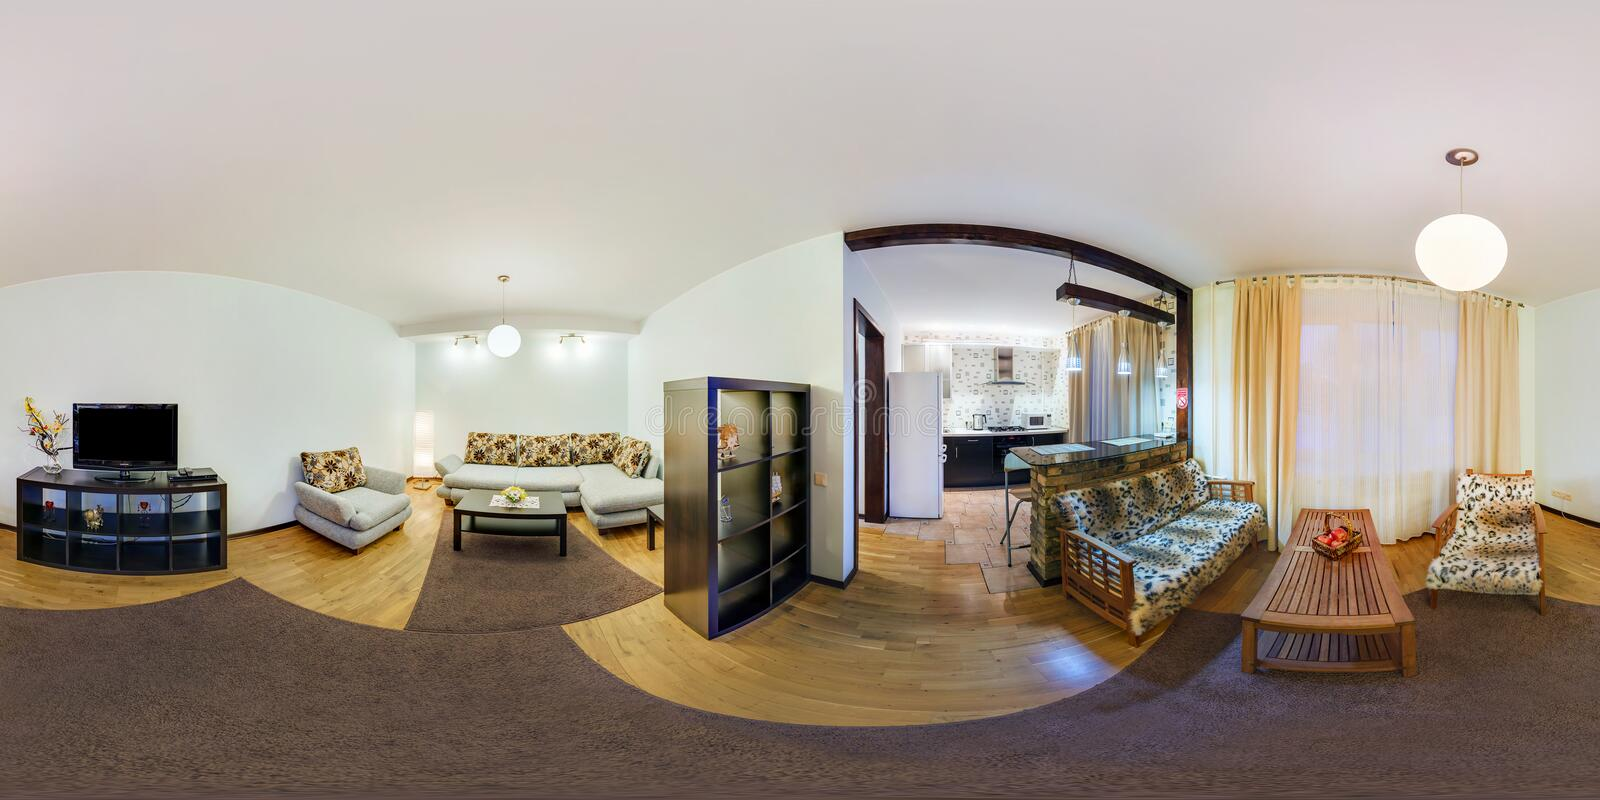 GRODNO, BELARUS - FEBRUARY 23, 2013: Full spherical 360 degrees seamless panorama in equirectangular equidistant projection,. Panorama in interior guestroom royalty free stock photo